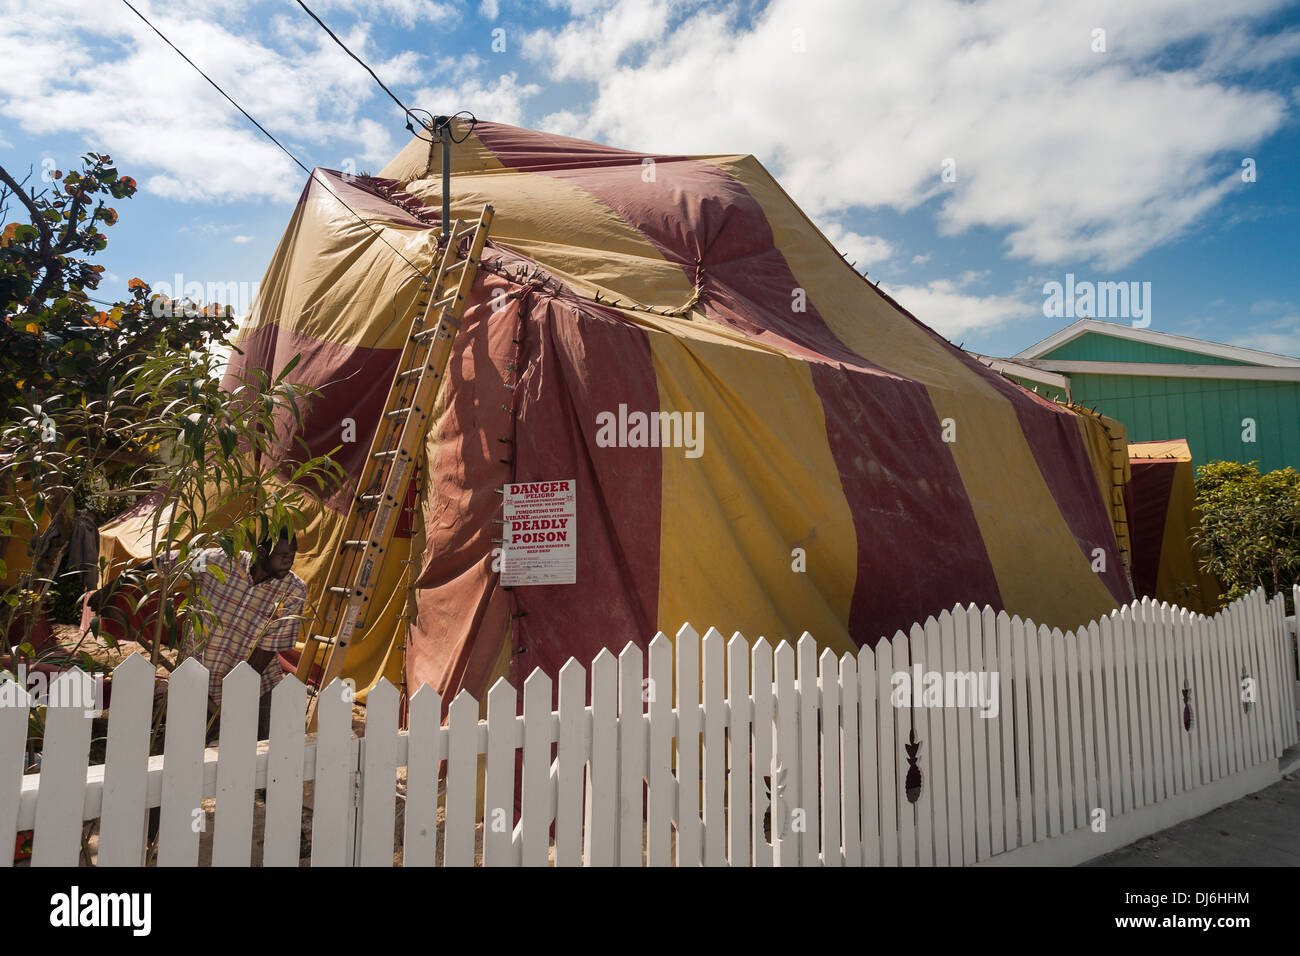 A worker sets up a tent to Fumigate a house. A colourful tent is set up to contain the poison gases used to kill an infestation & A worker sets up a tent to Fumigate a house. A colourful tent is ...